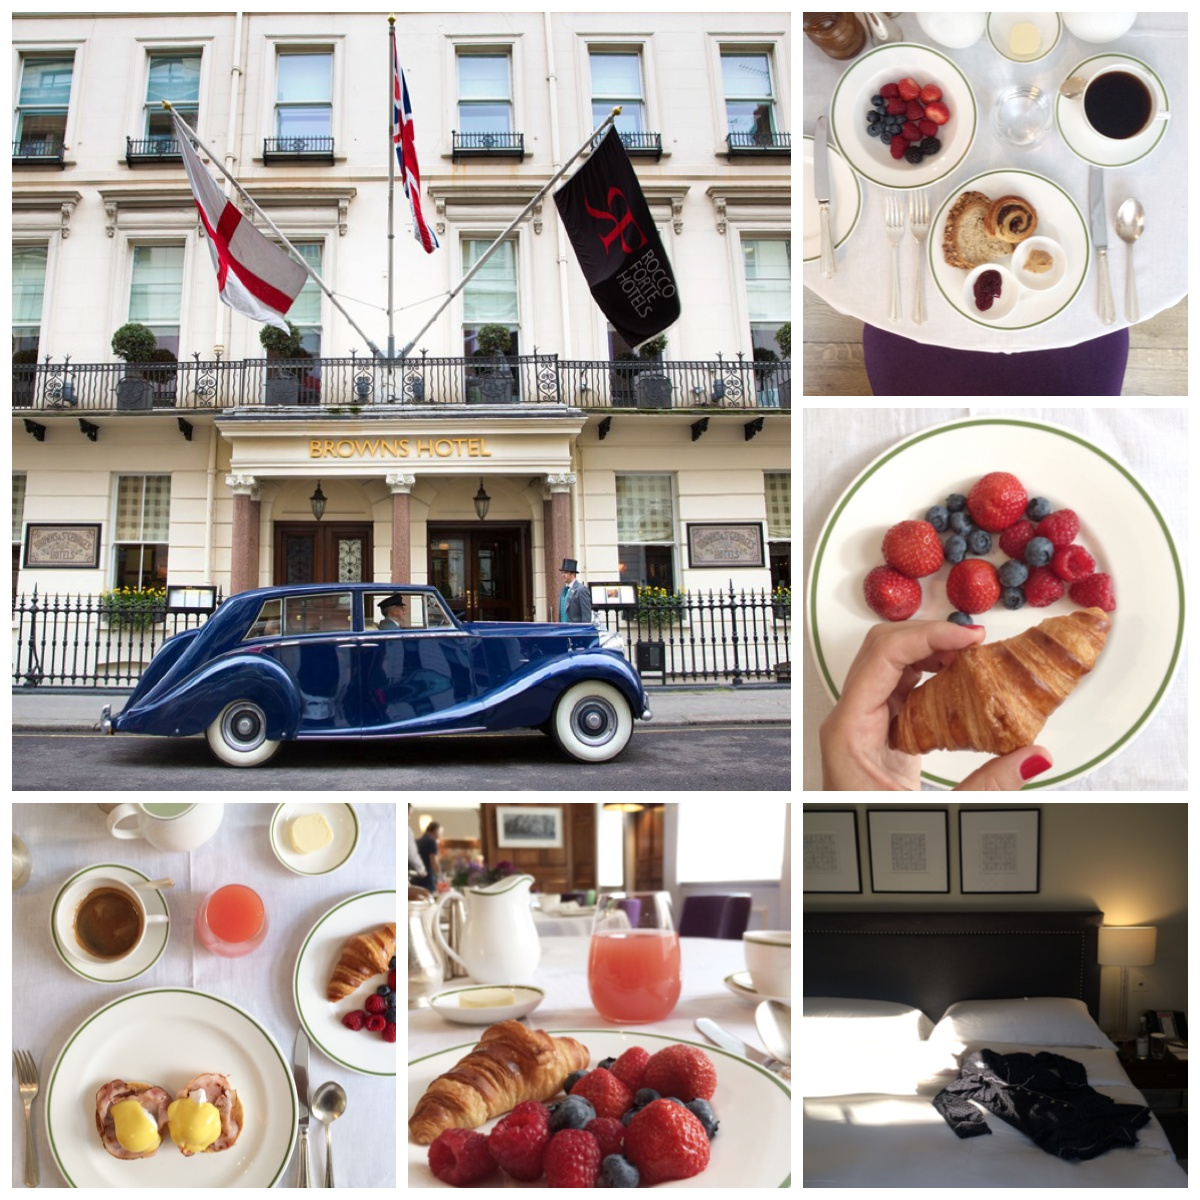 Browns Hotel | Roccoforte Hotels | Nonsolofood